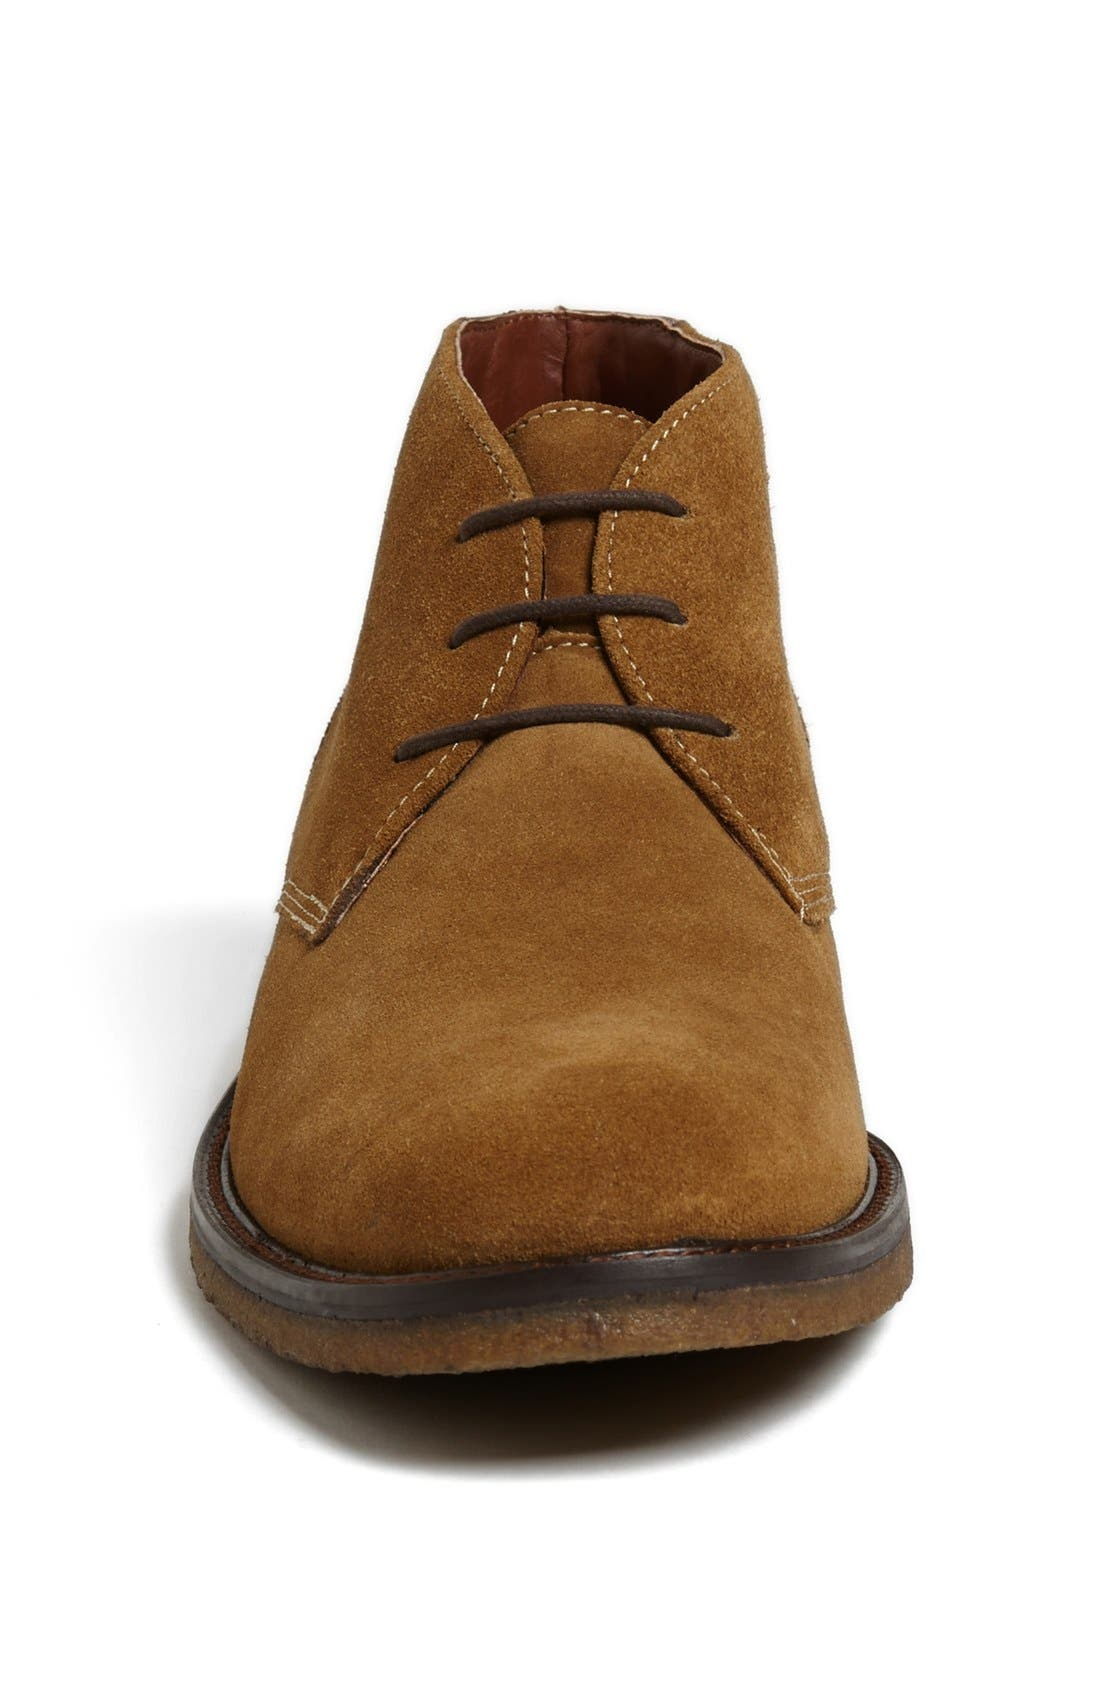 'Copeland' Suede Chukka Boot,                             Alternate thumbnail 34, color,